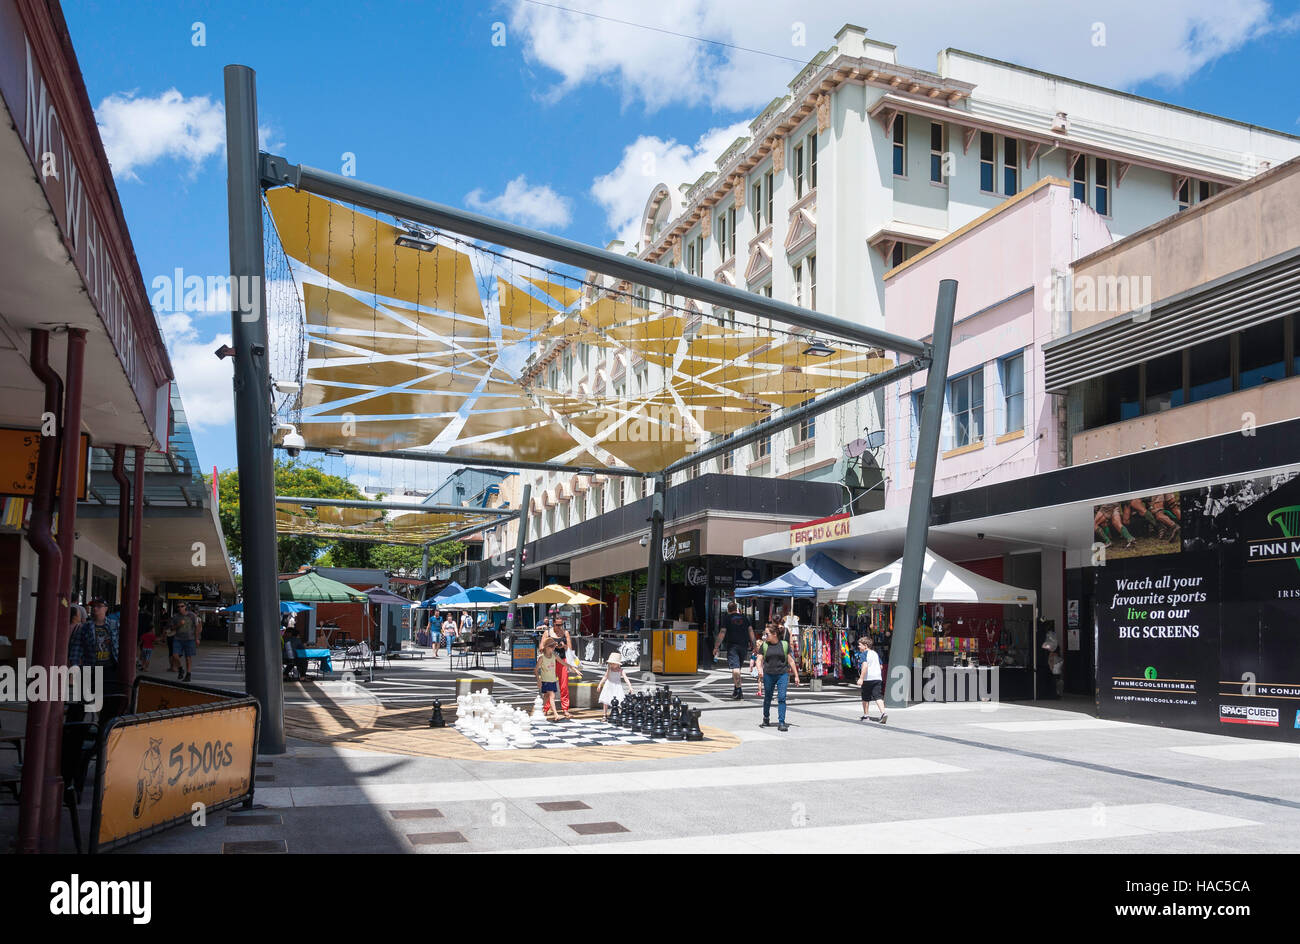 Brunswick Street Mall, Fortitude Valley, Brisbane, Queensland, Australia Stock Photo